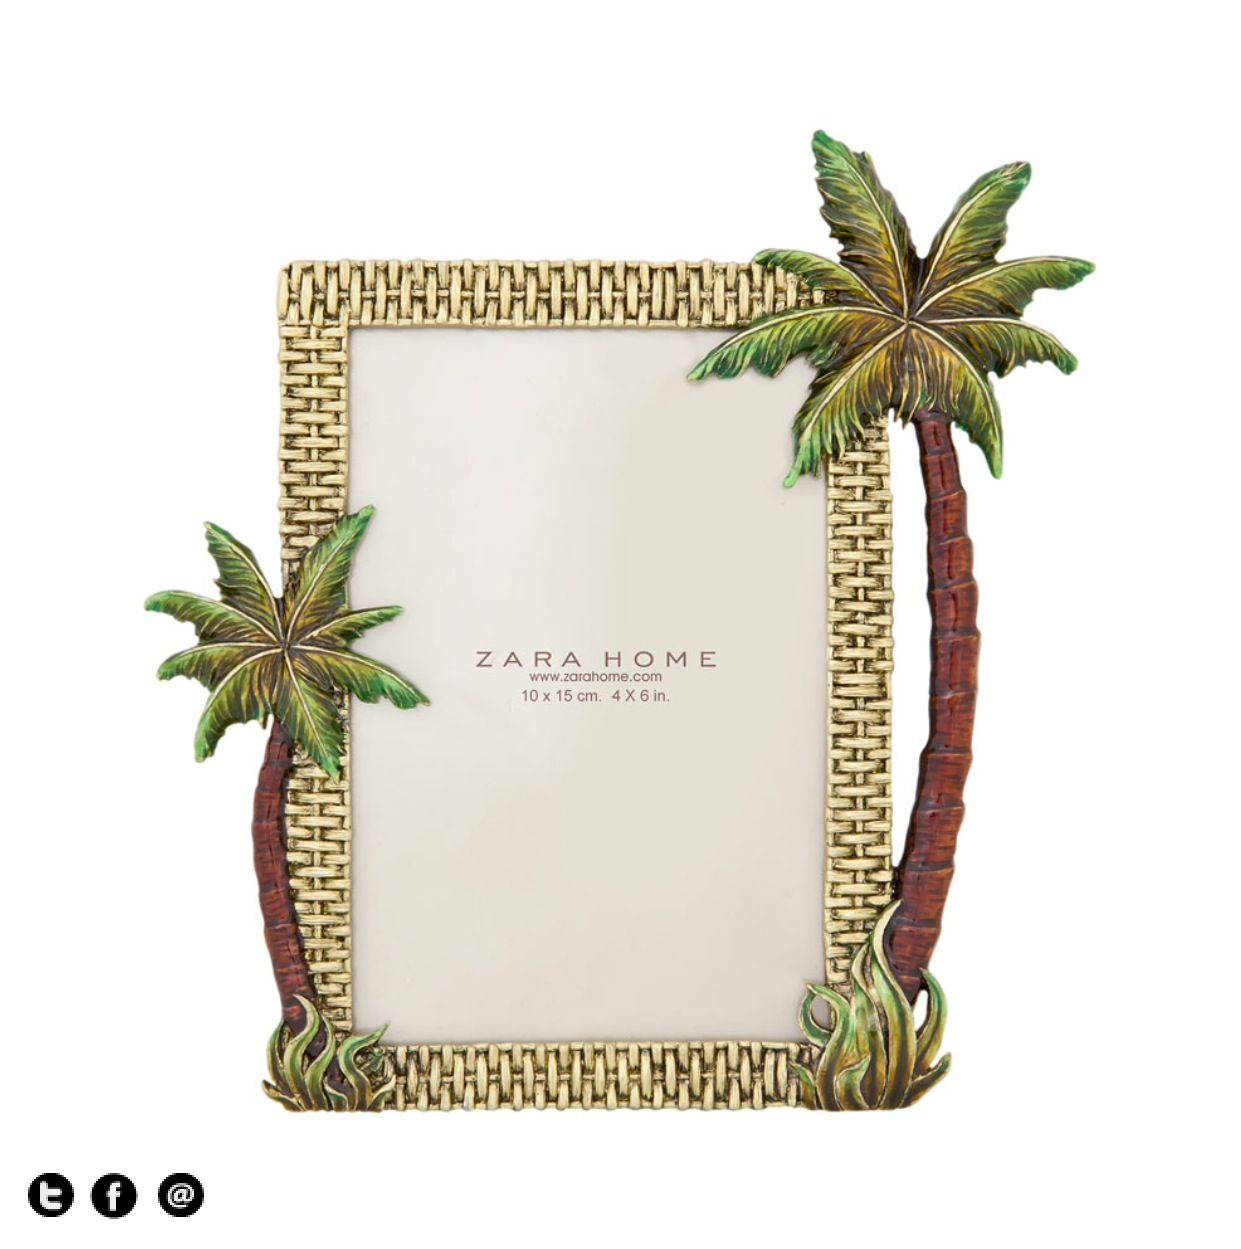 Marco palmeras zara home pinterest palm tree picture frame zara home jeuxipadfo Choice Image